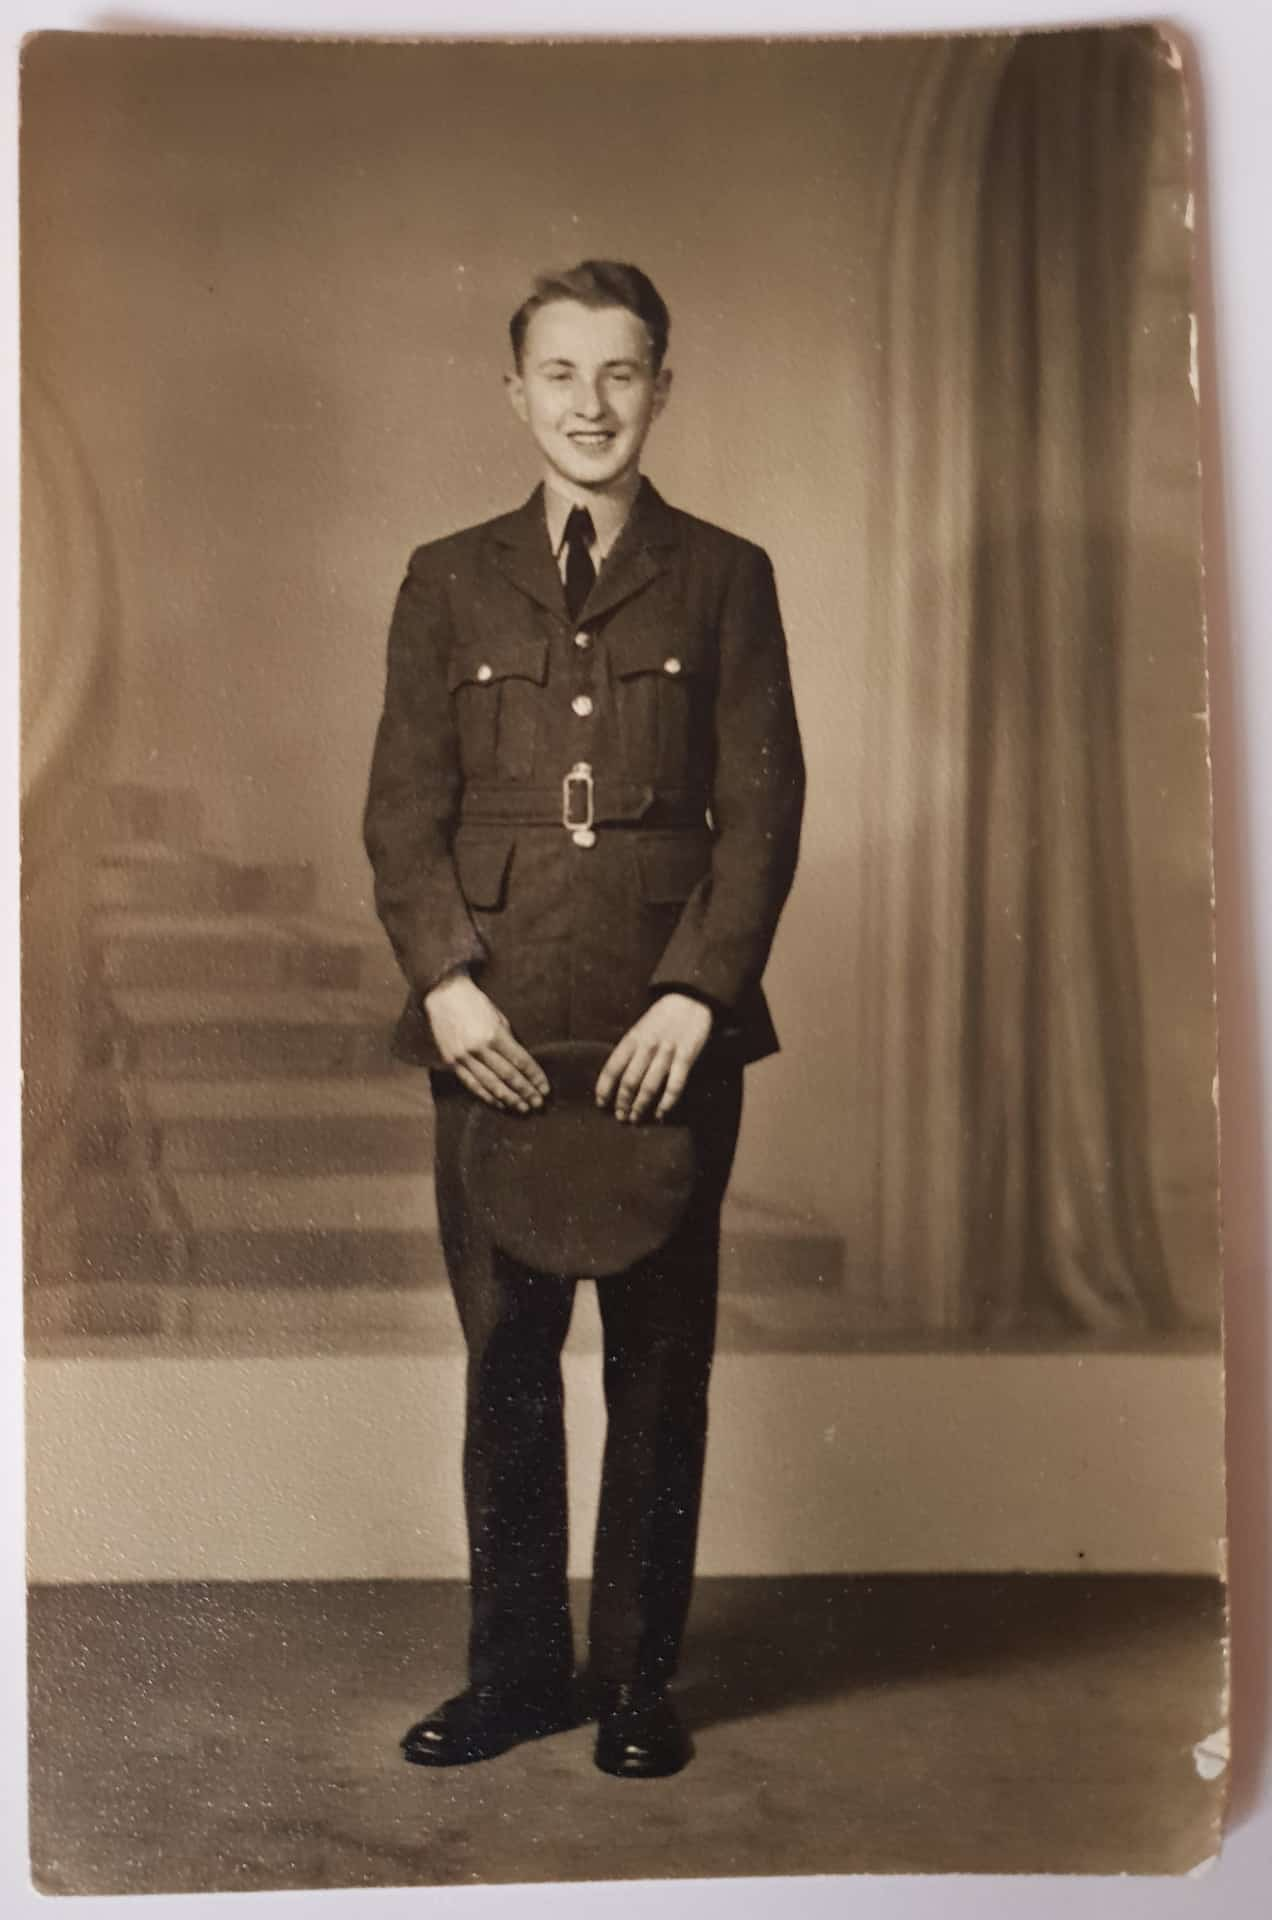 John in his National Service uniform, 1950s